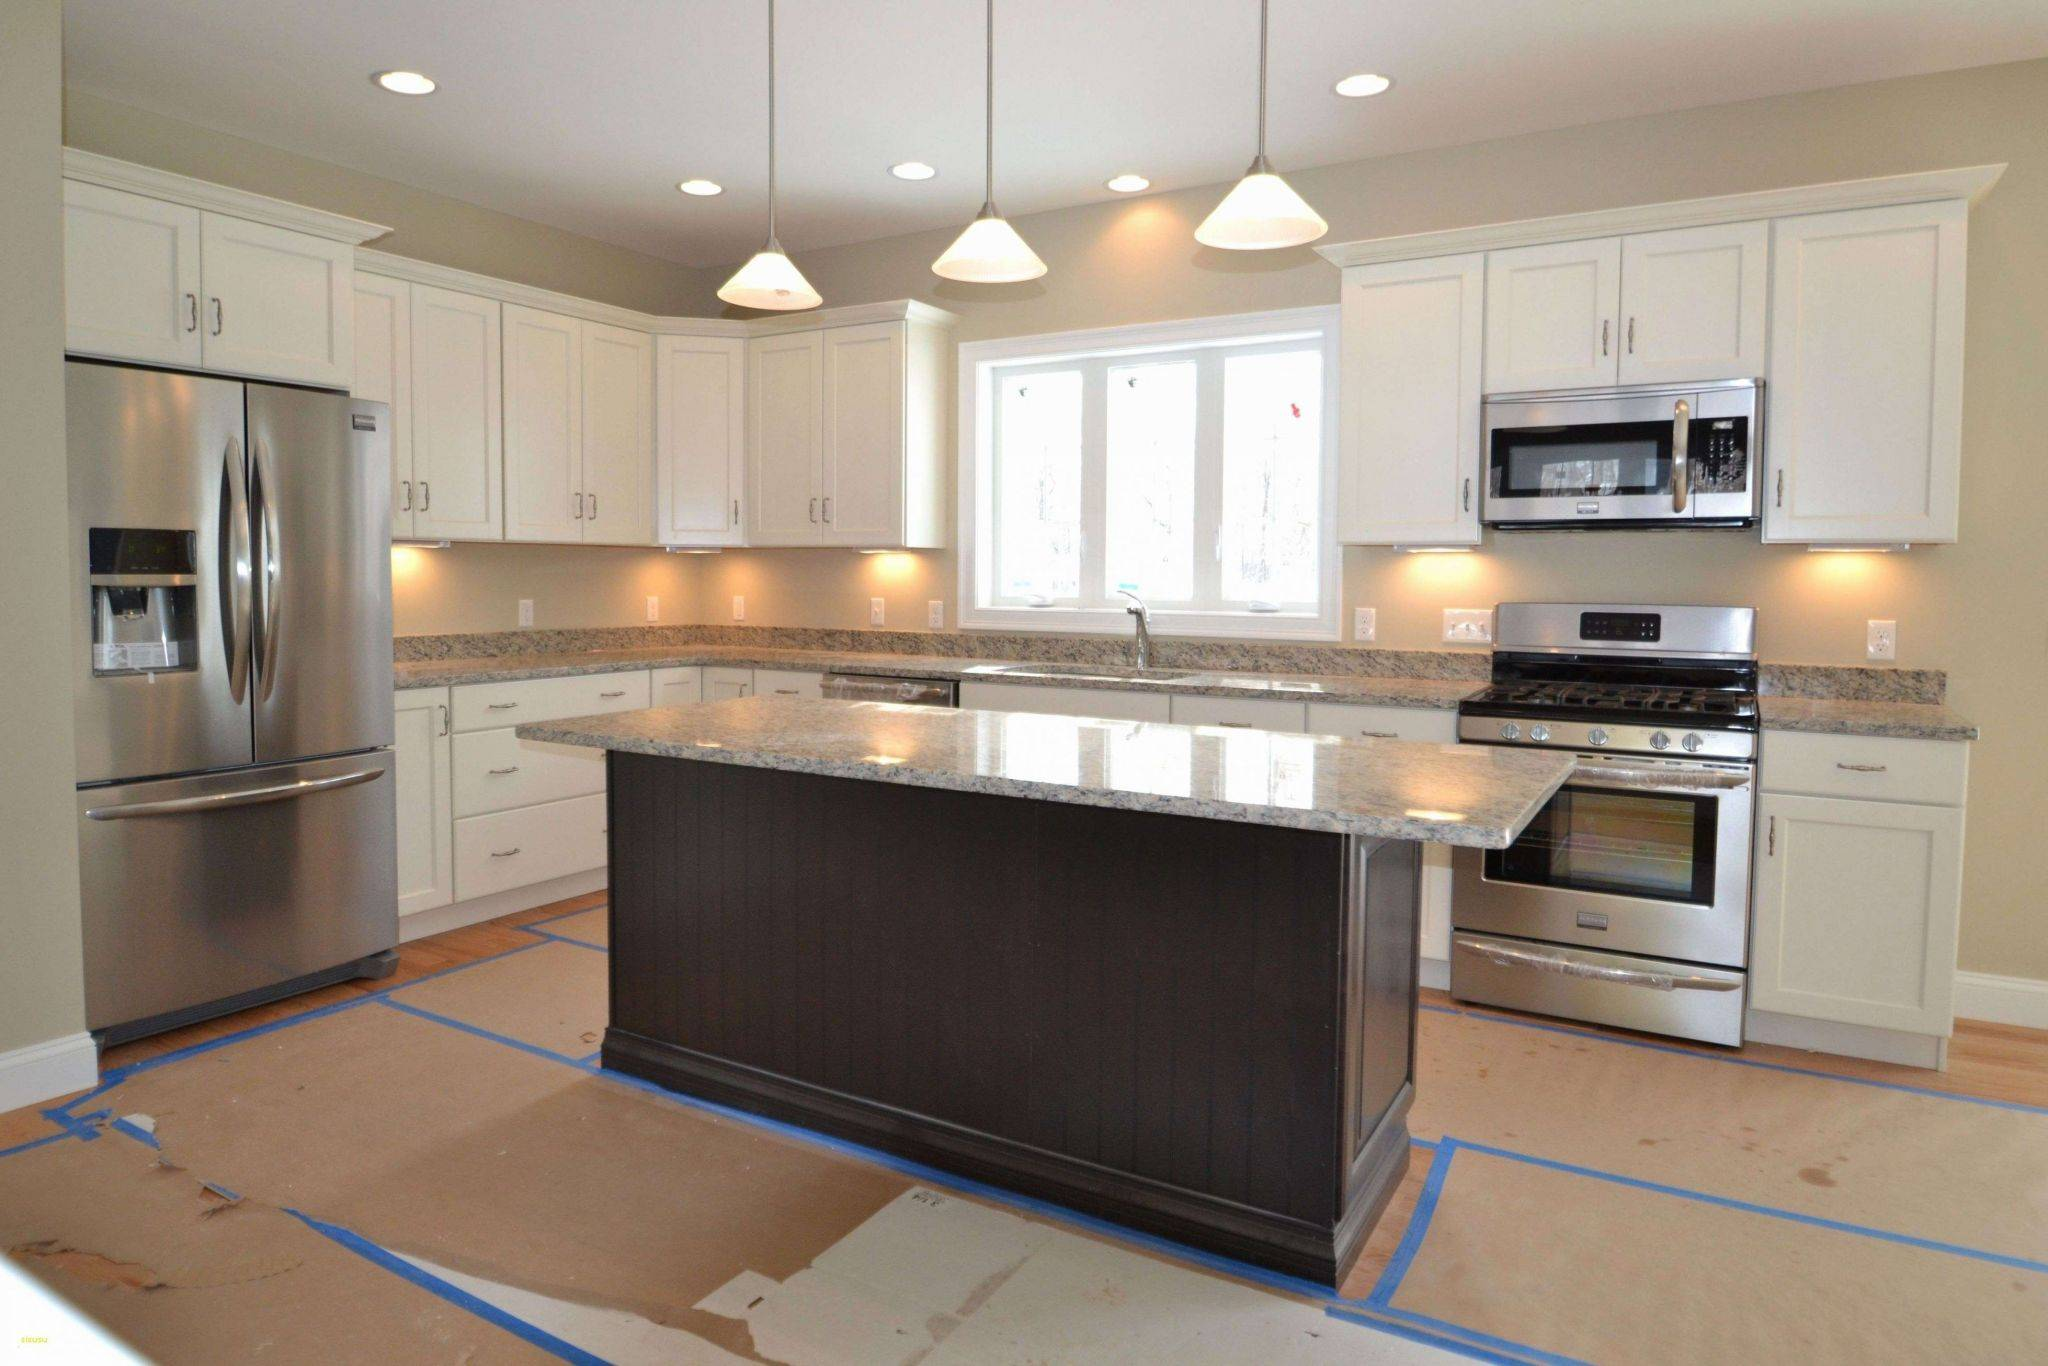 kitchen island design plans to her with cool center island designs for kitchens of kitchen island design plans